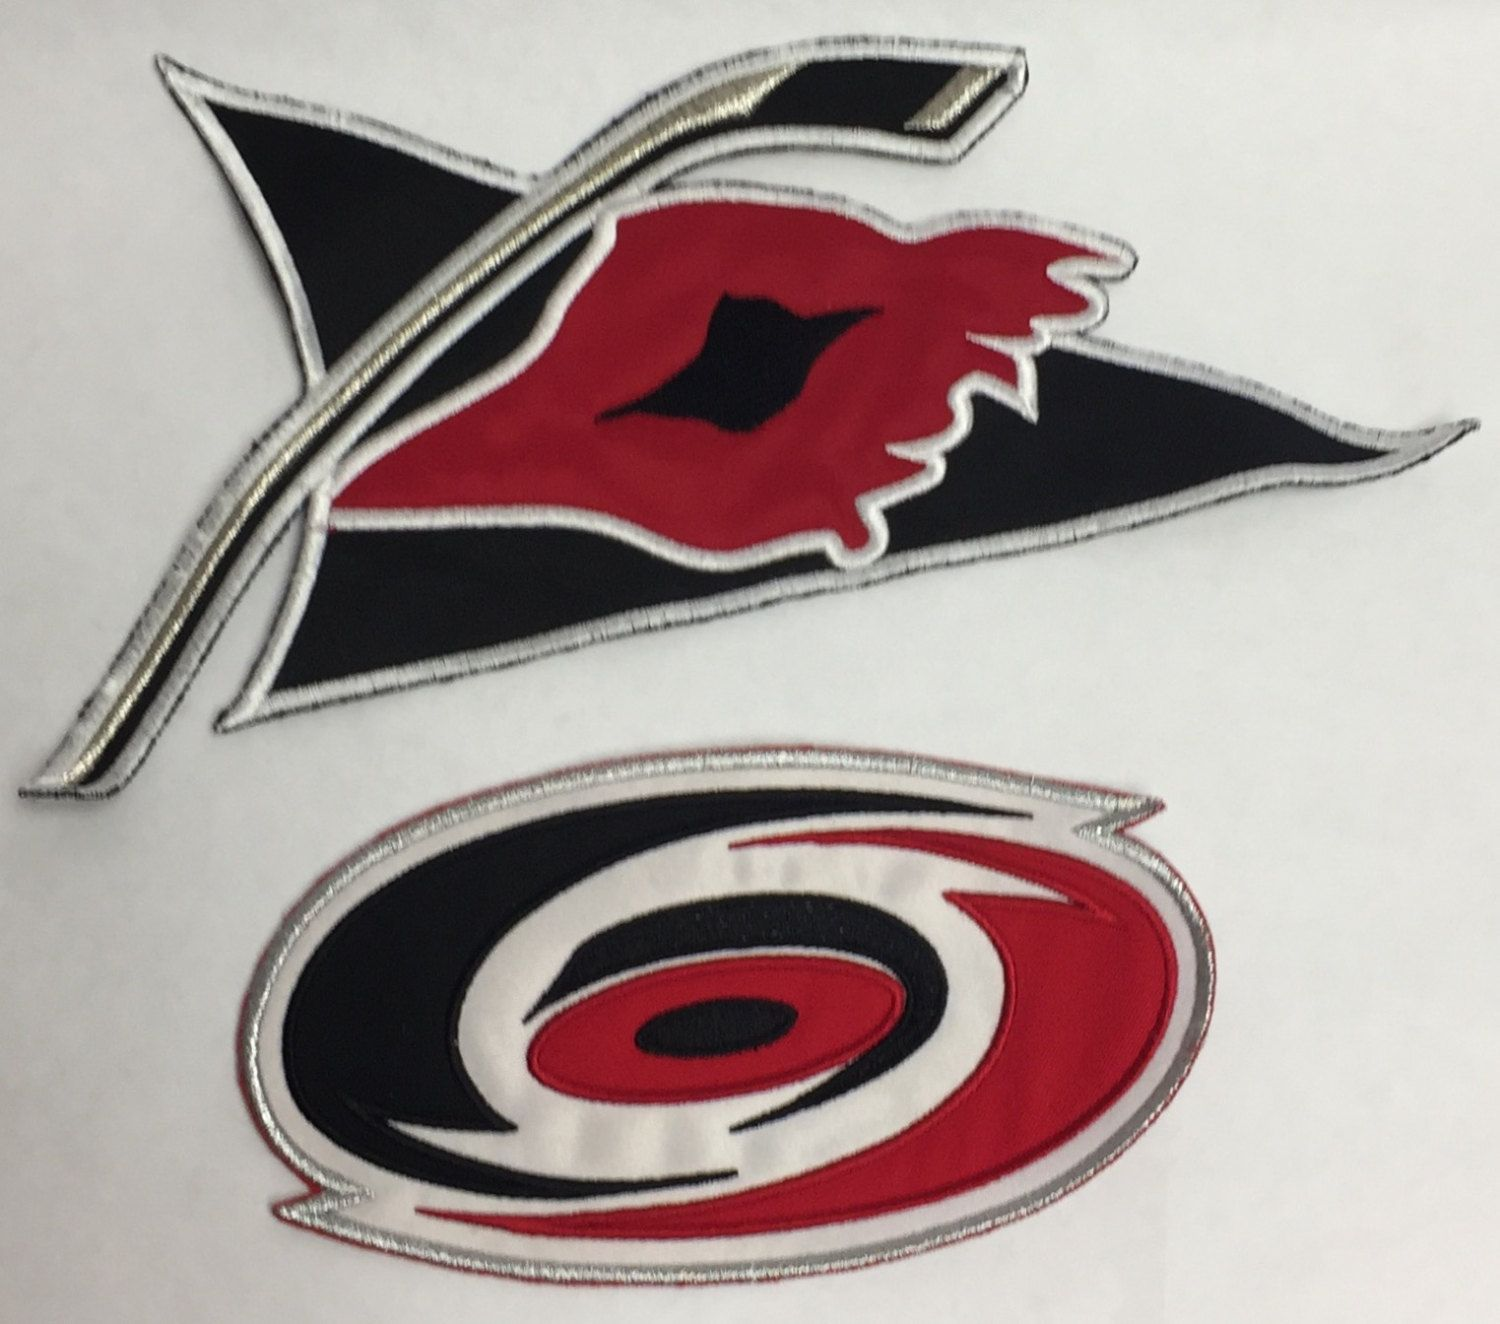 Lot of 2 Medium Sized Carolina Hurricanes Patches by CoryCranksOutHats on Etsy